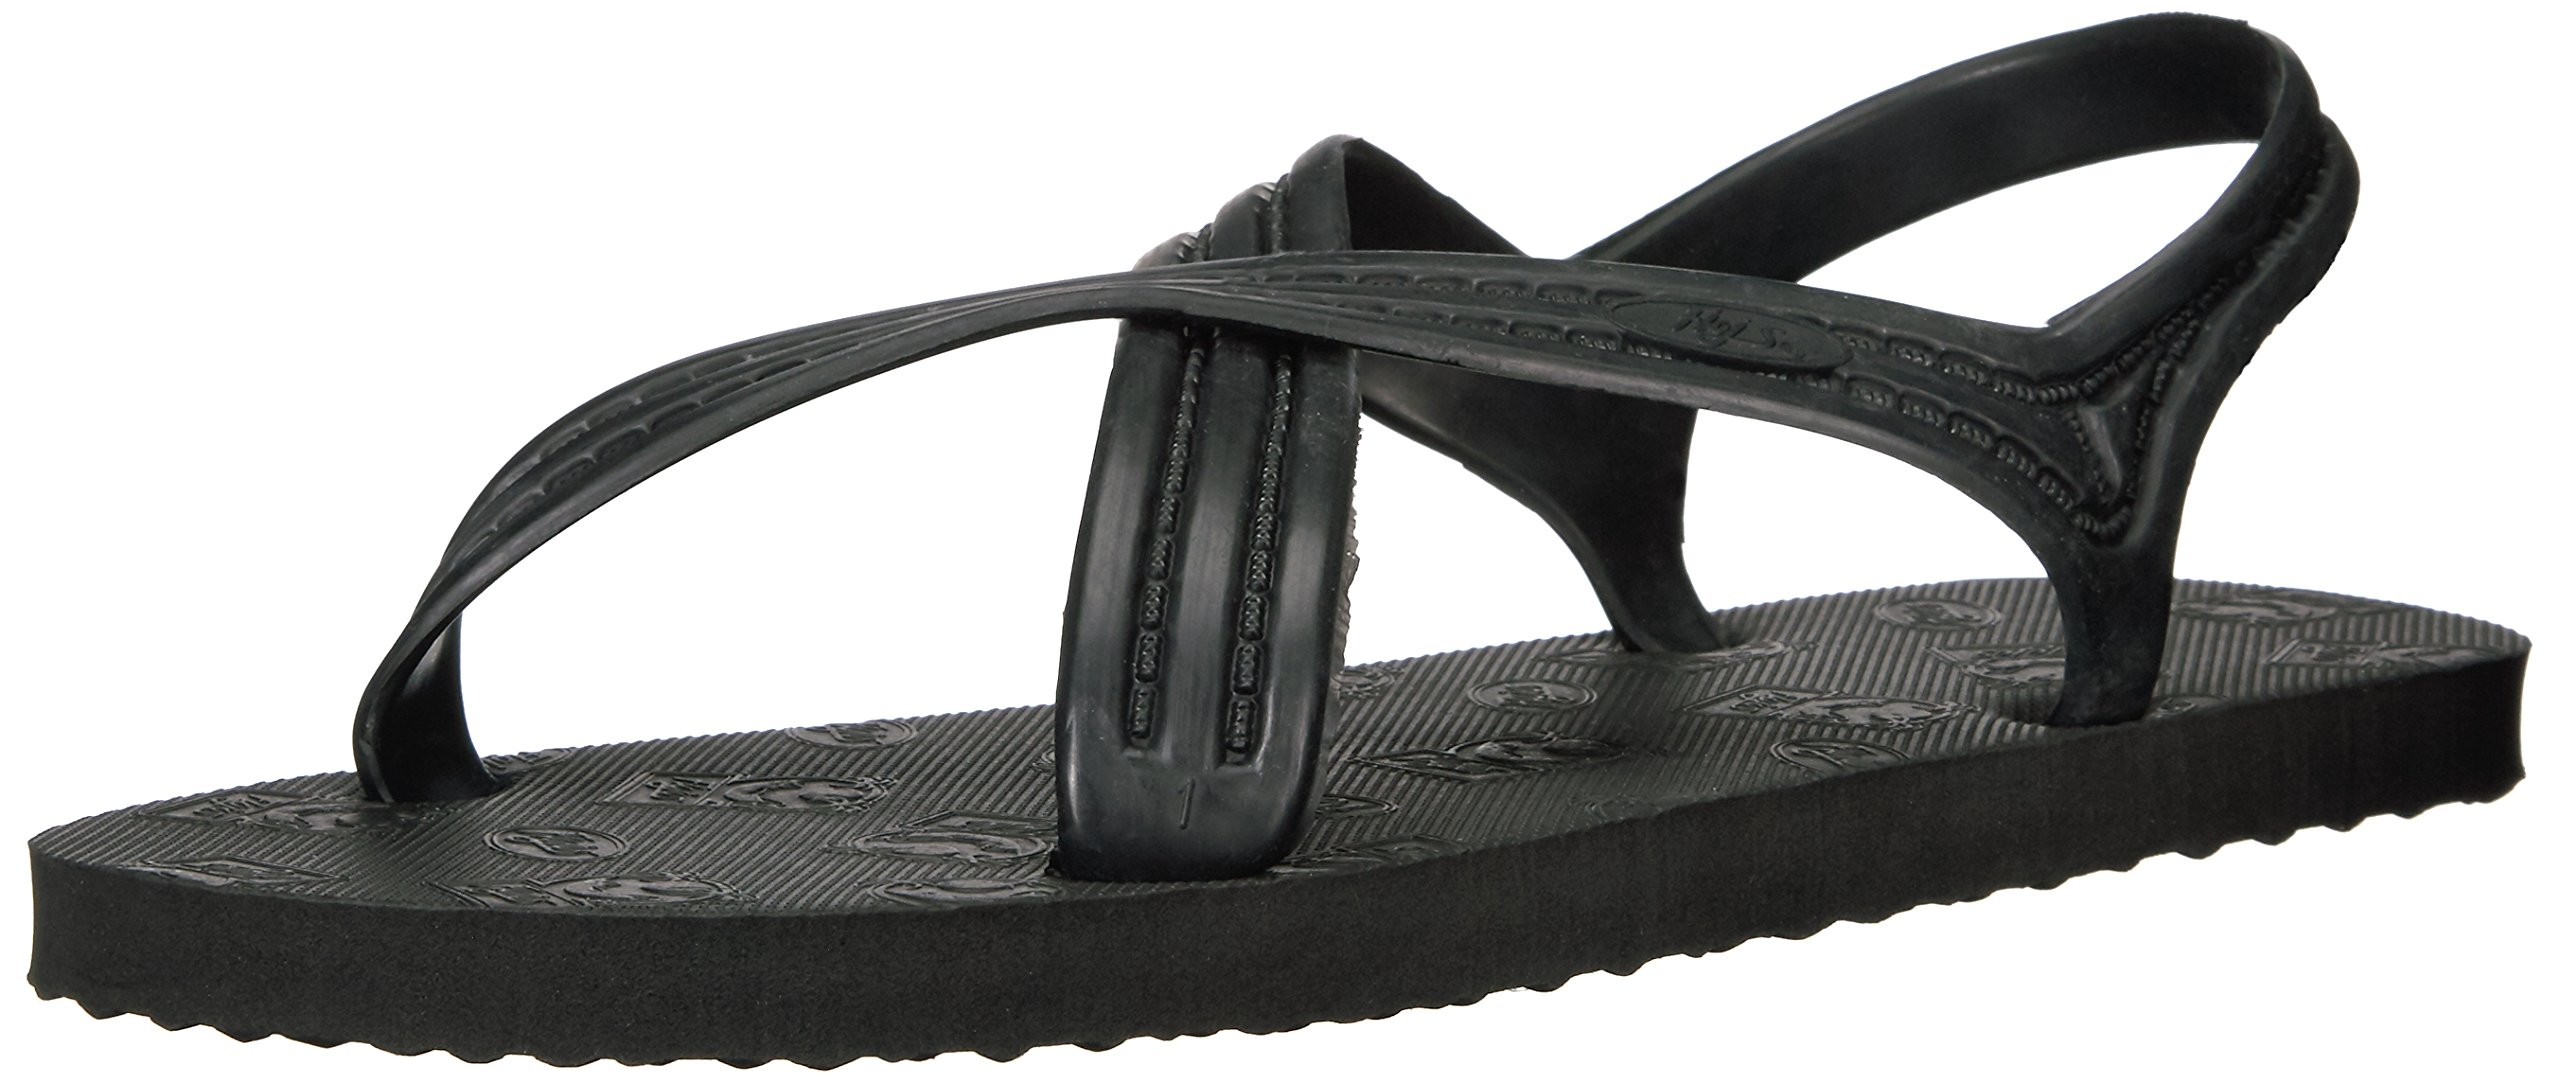 Flojos Men's 101 Flip Flop, Black, 13 M US